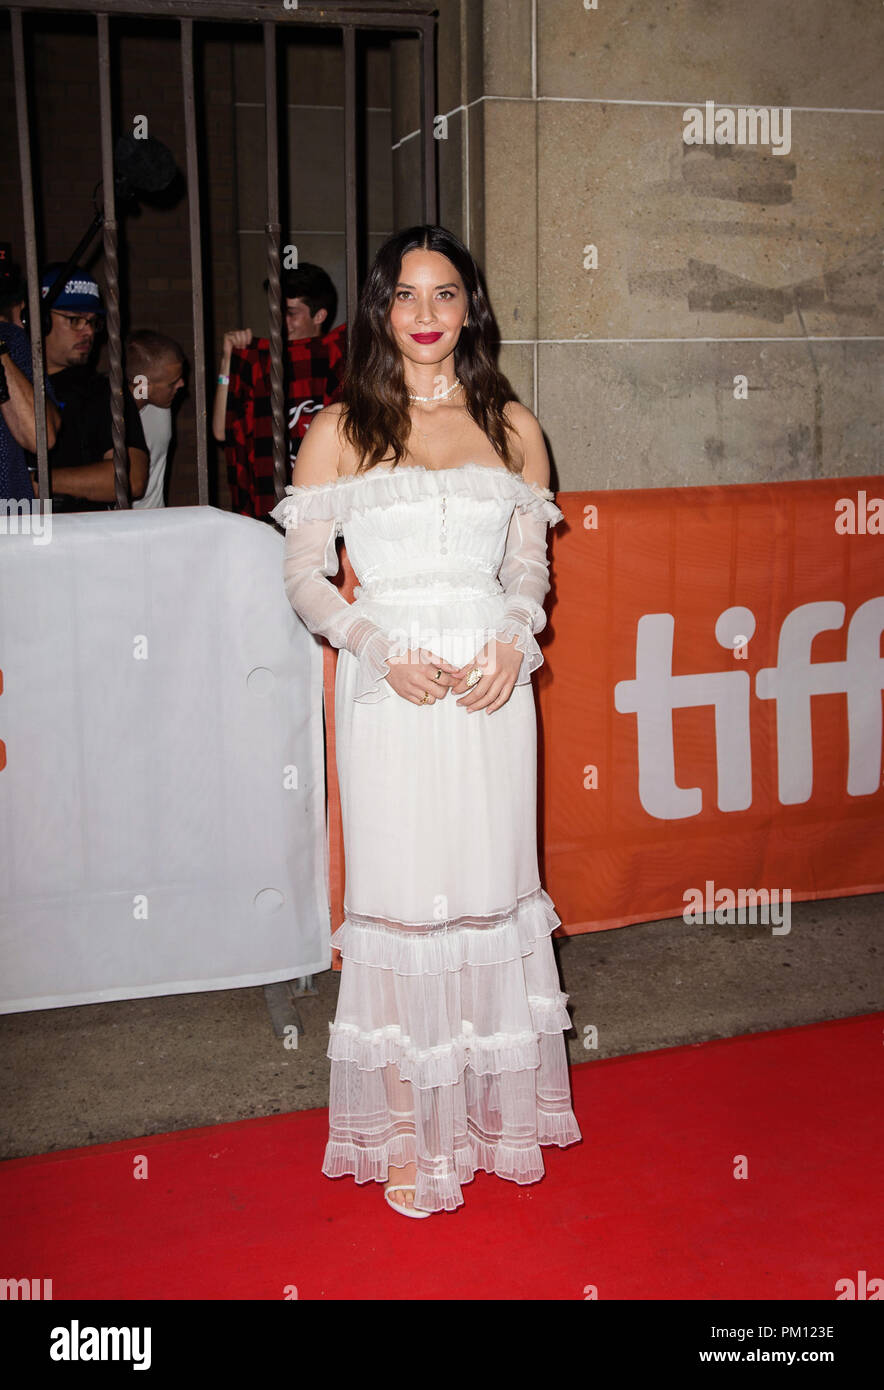 Toronto, Ontario, USA. 6th Sep, 2018. 06 September 2018 - Toronto, Ontario Canada - Olivia Munn. 2018 Toronto International Film Festival - ''The Predator'' Premiere held at Roy Thomson Hall. Photo Credit: Brent Perniac/AdMedia Credit: Brent Perniac/AdMedia/ZUMA Wire/Alamy Live News Stock Photo